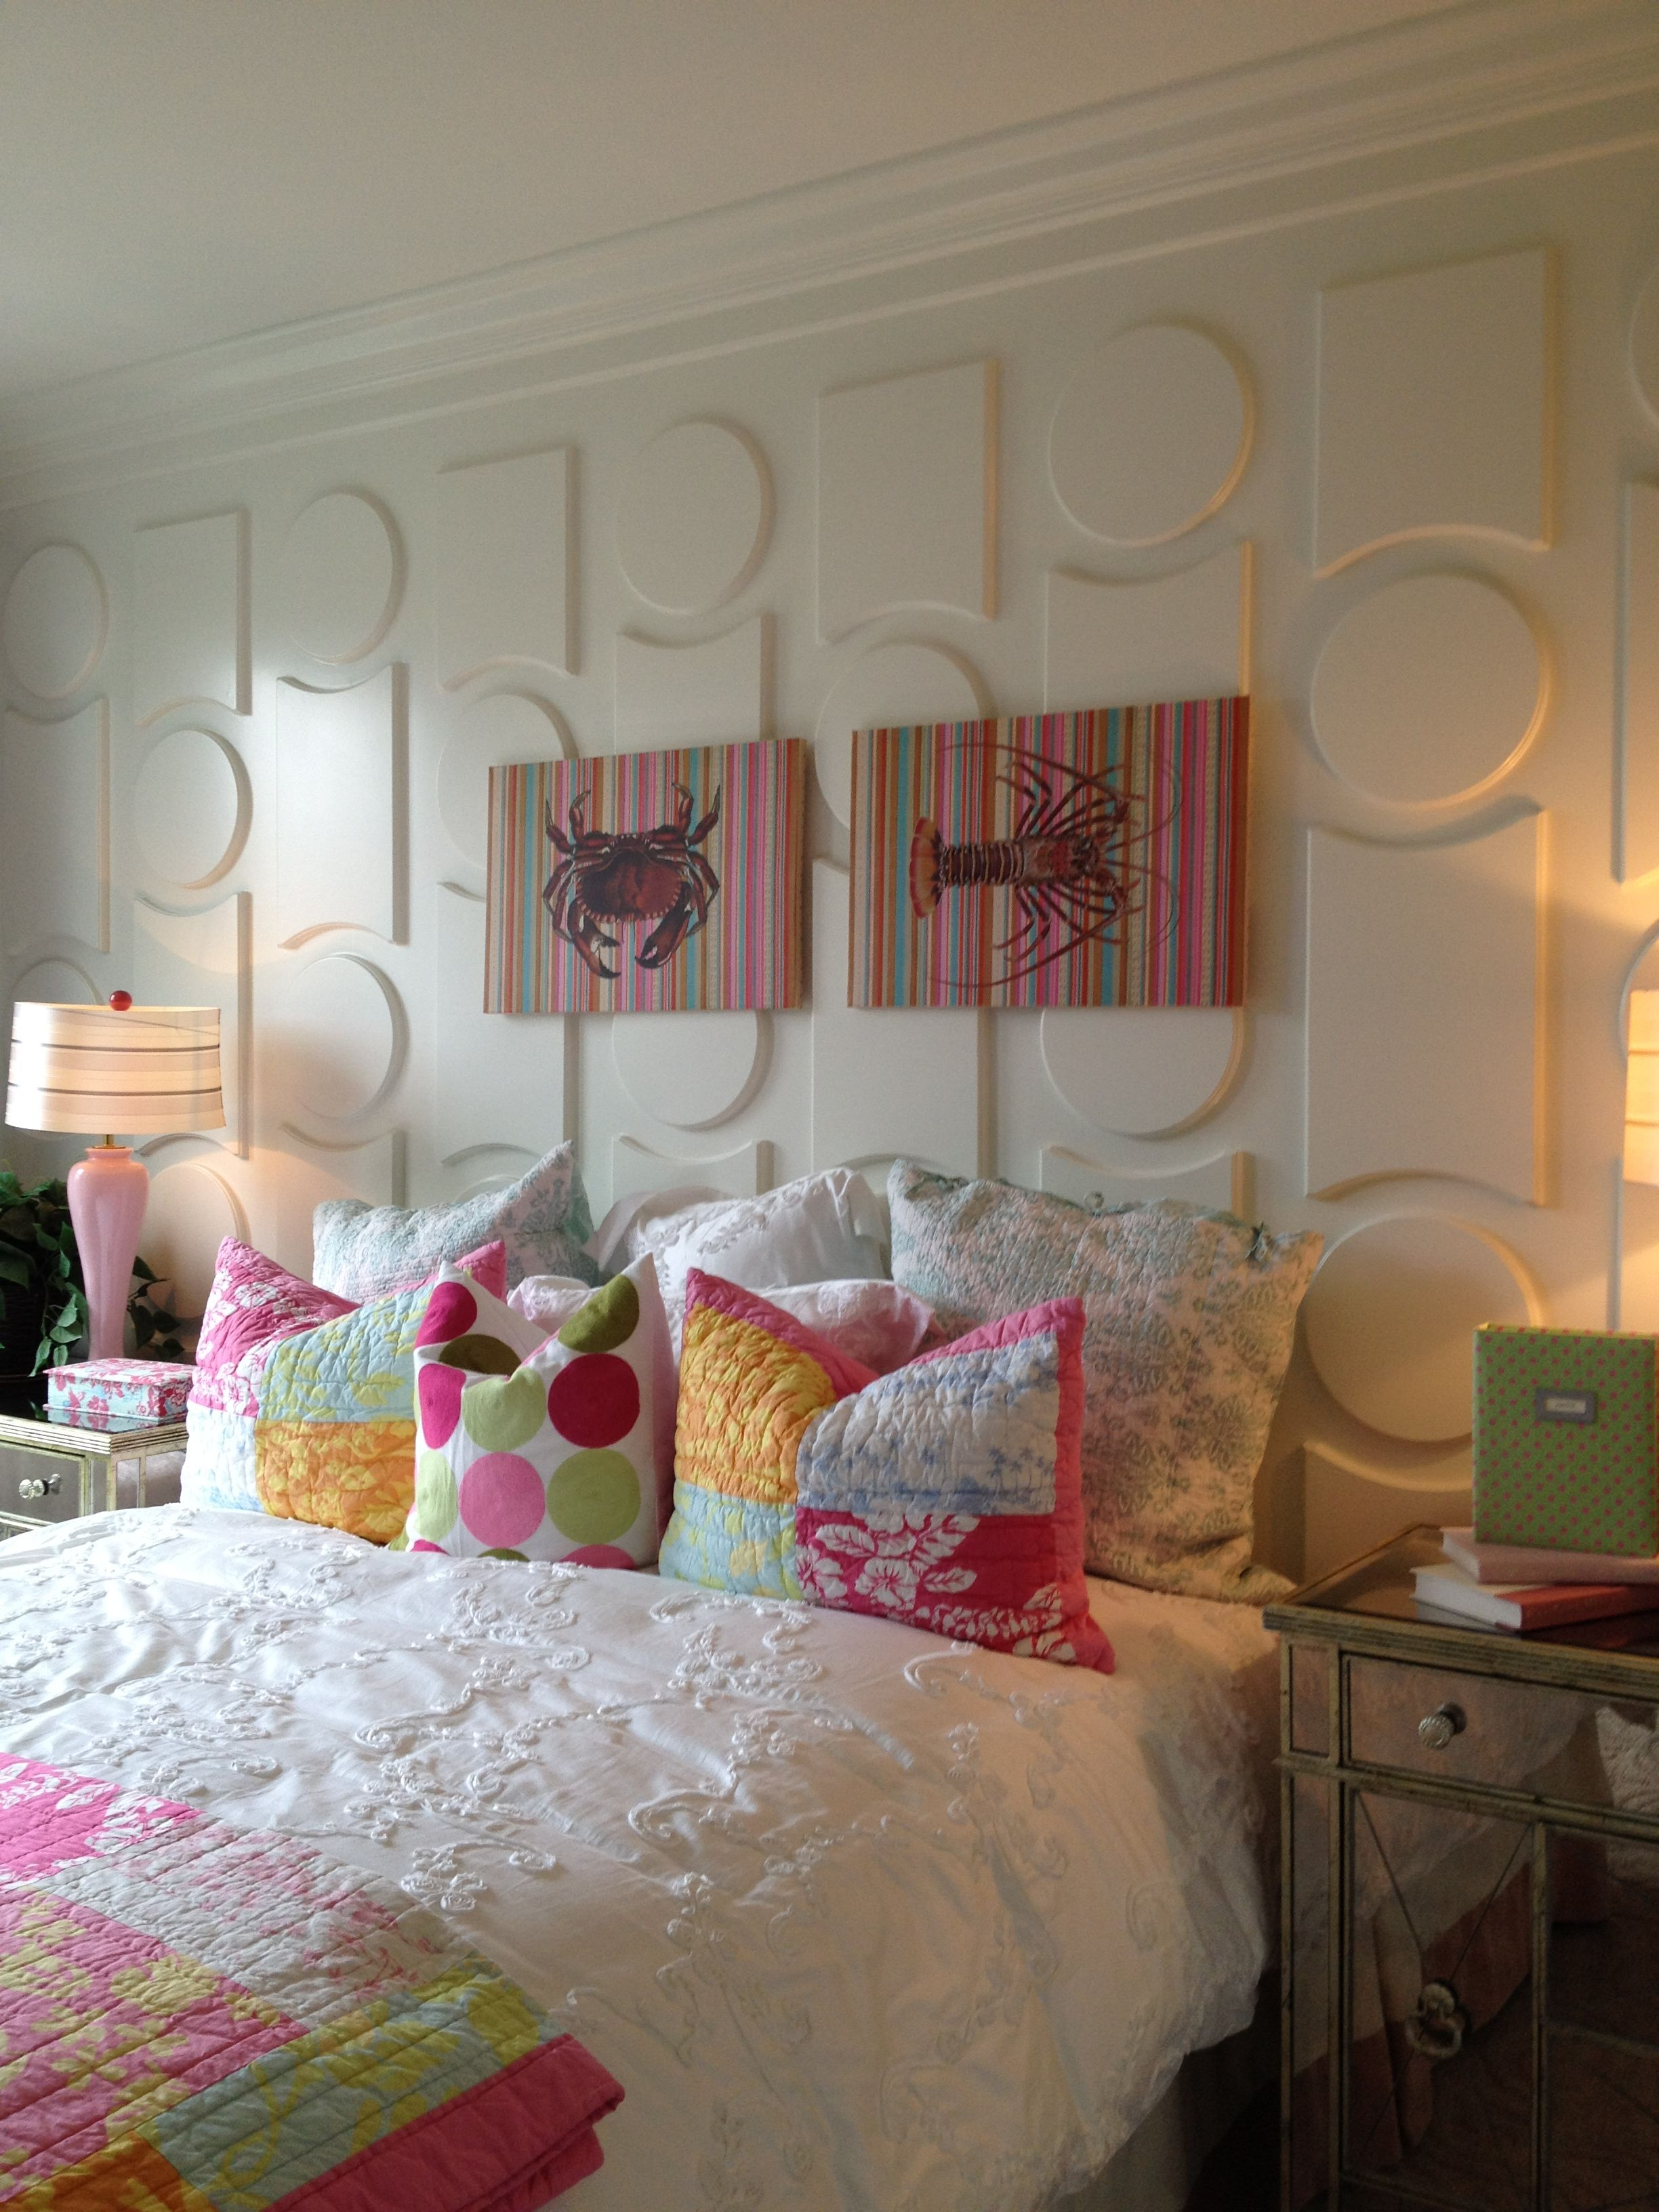 Pin By Sheila On Bed Walls Modern Bedroom Interior Bedroom Interior Luxurious Bedrooms